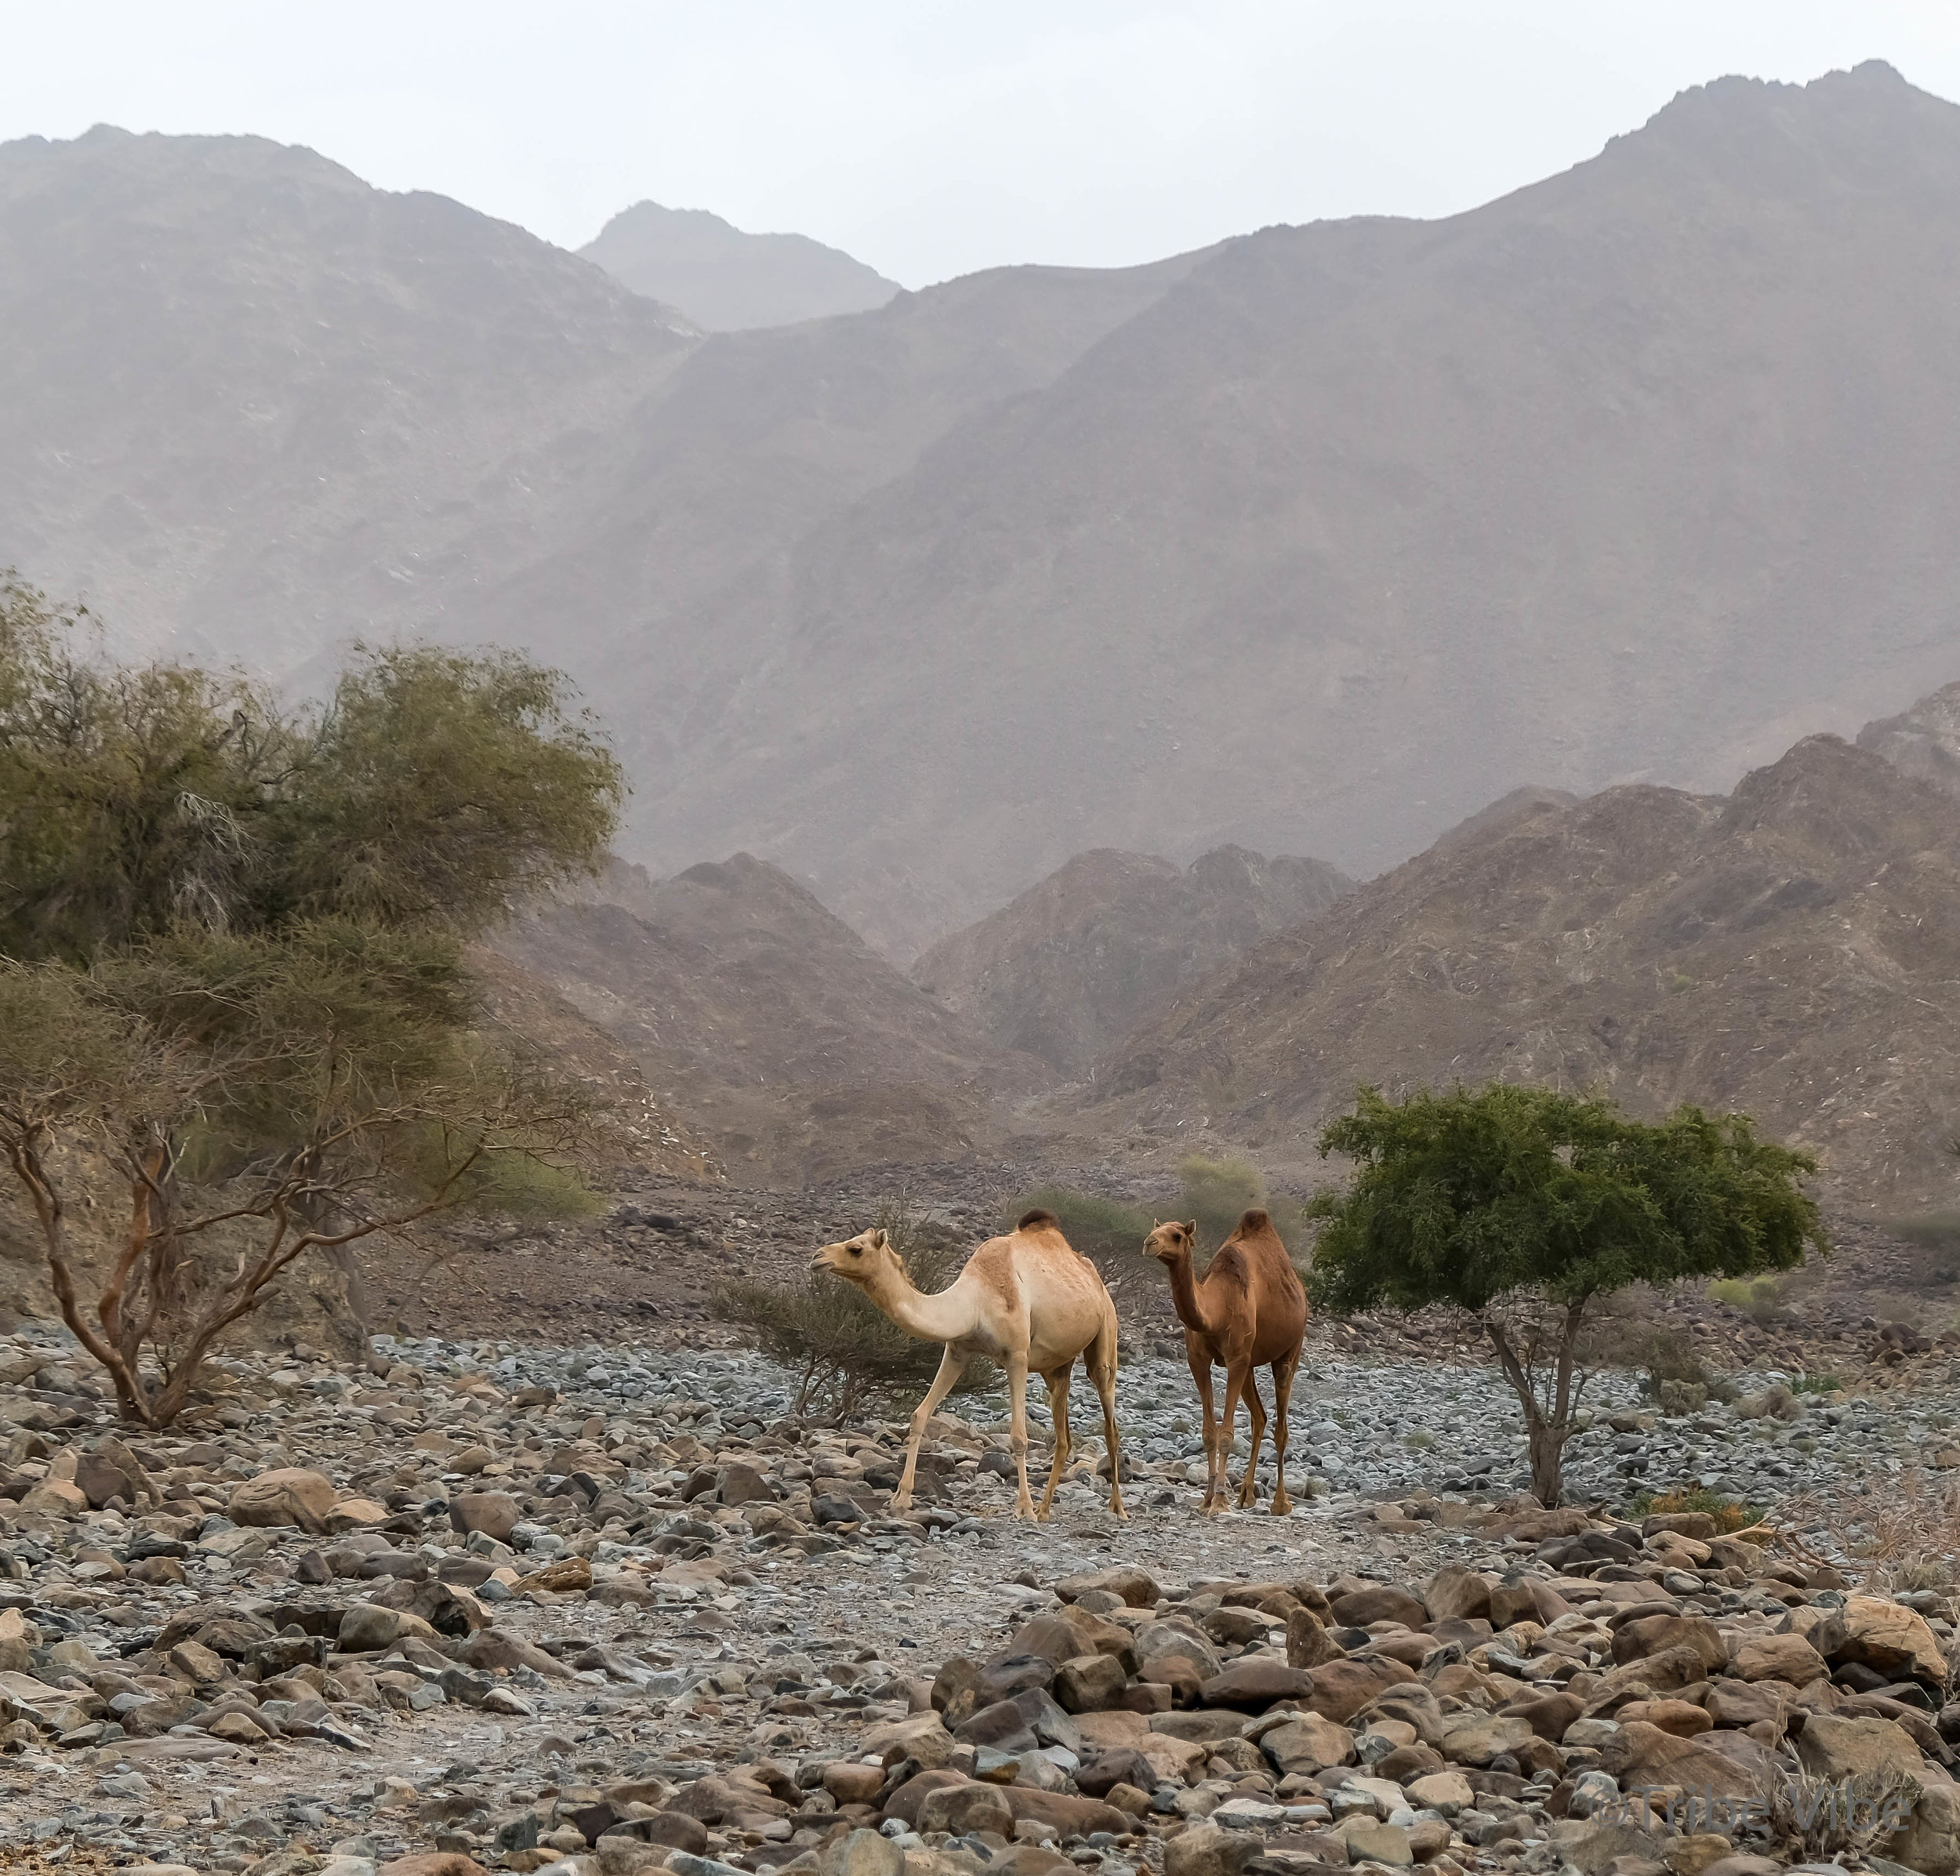 Camels walking freely down the wadi towards us. AMAZING!!